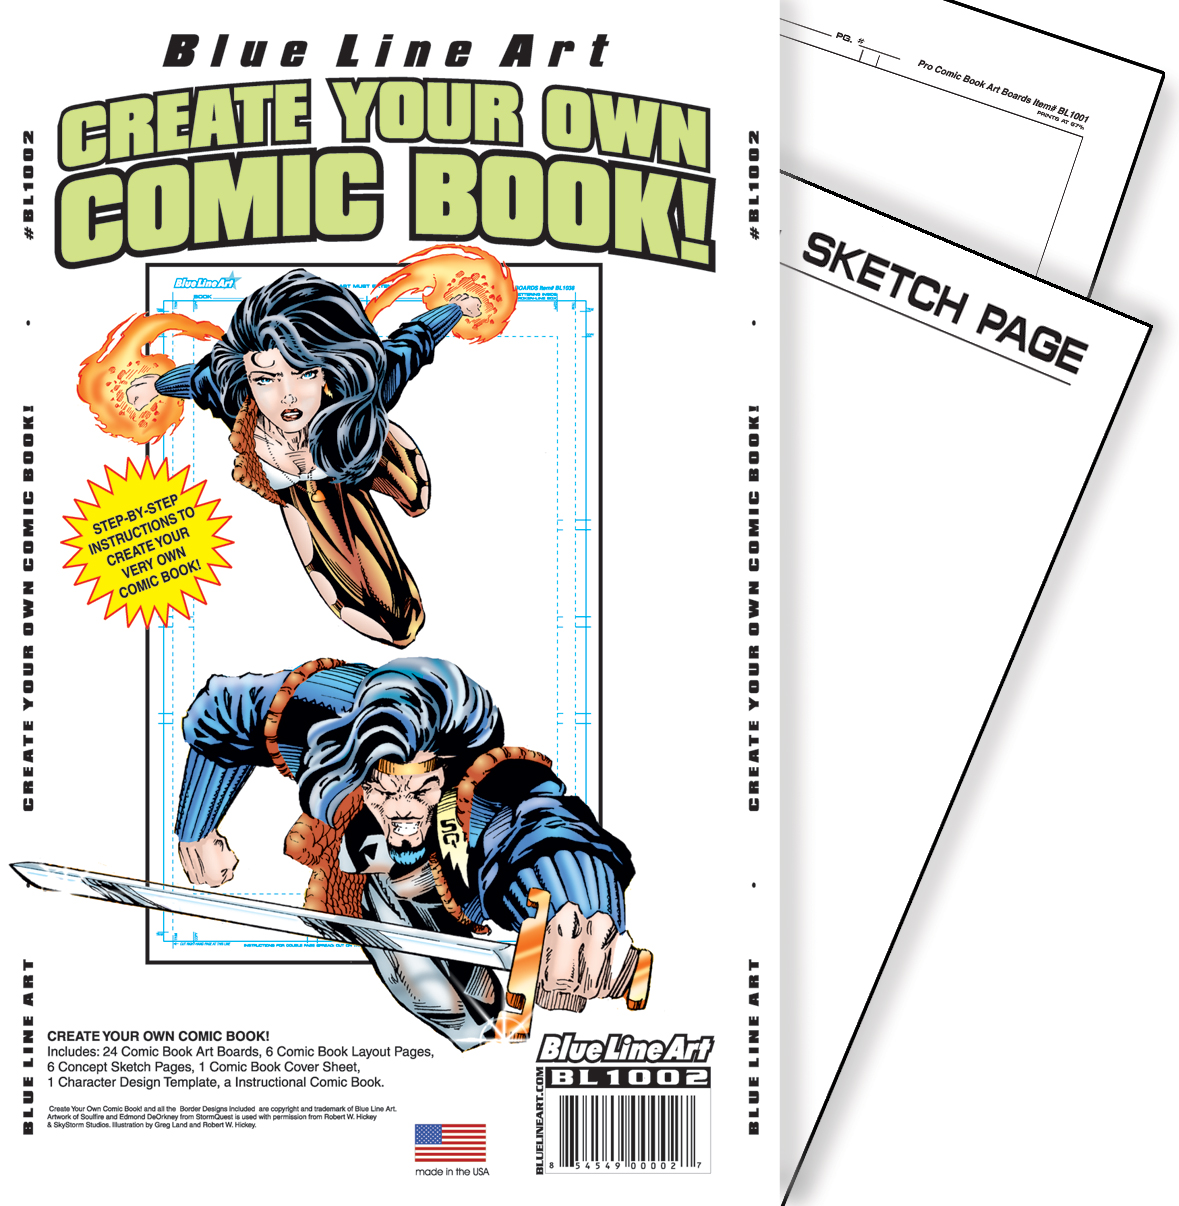 BL1002COVER_cat